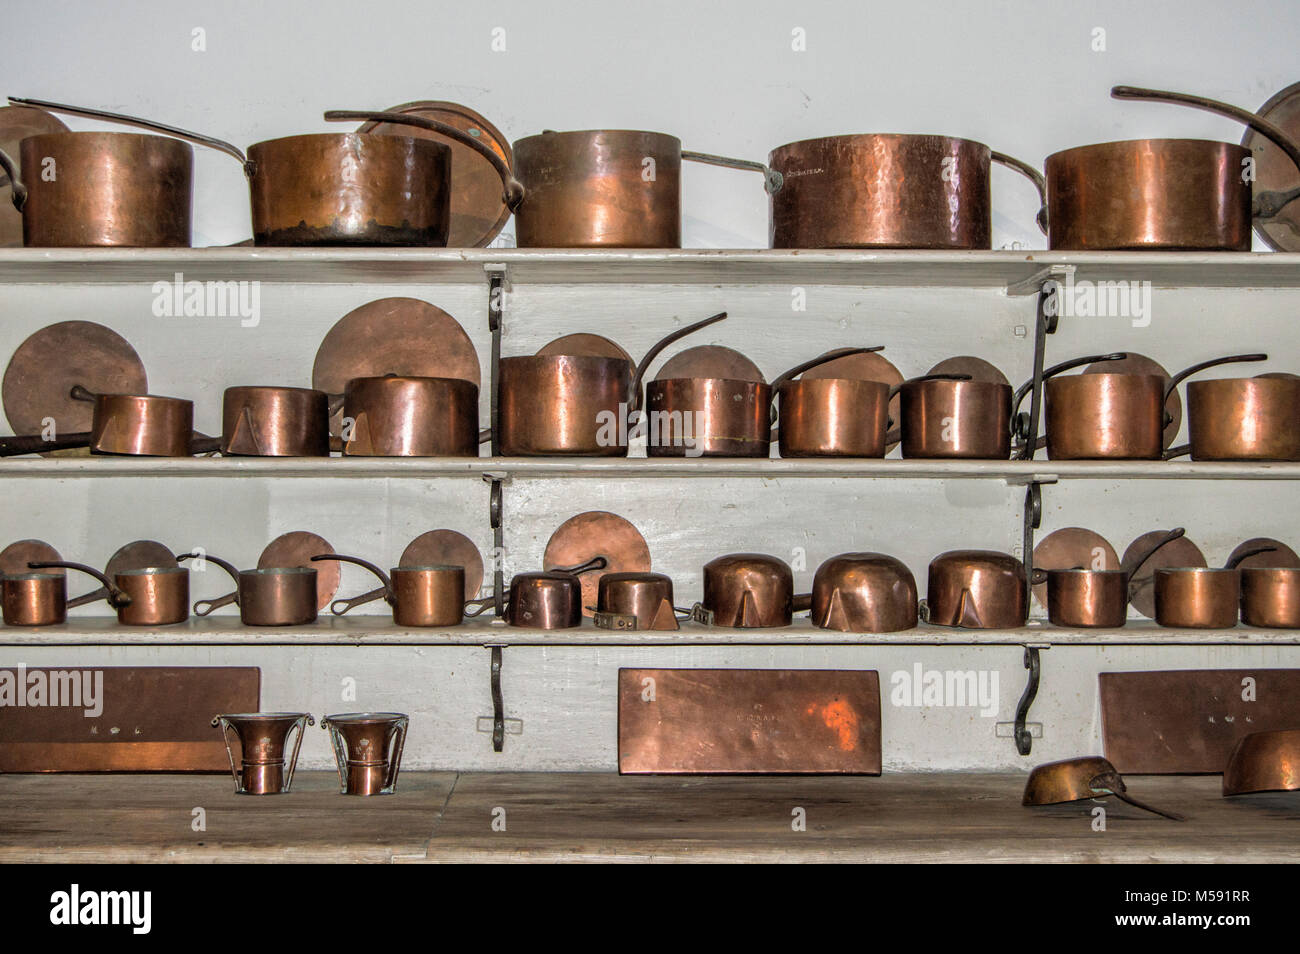 Merveilleux Old Kitchen Utensils In Copper Spread Over Three Shelves In The Kitchen Of  The Royal Palace Of Madrid. Spain.